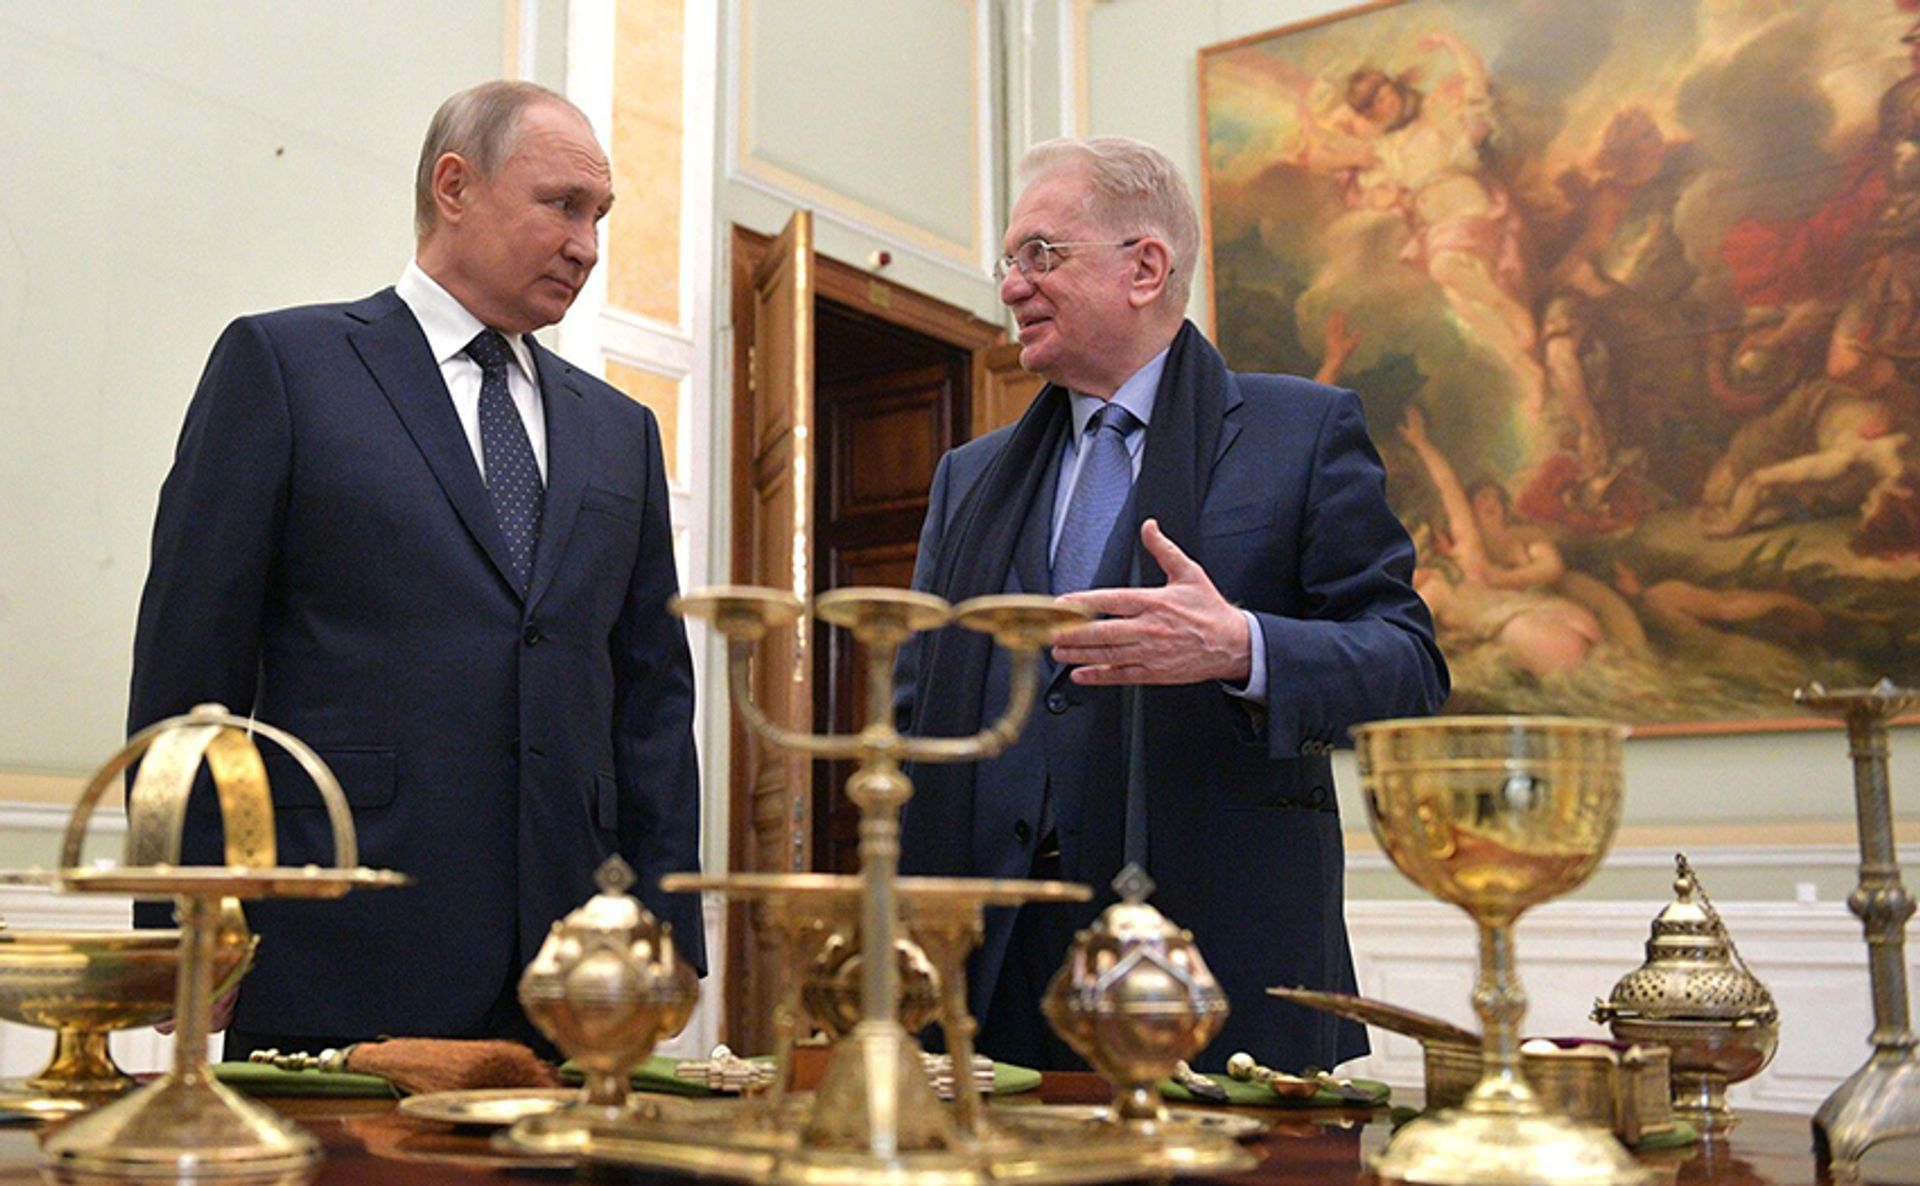 In April, Russian president Vladimir Putin handed over to Hermitage Museum director Mikhail Piotrovsky a set of church utensils made in St Petersburg in 1877 on commission by the imperial court of Russia for Grand Duchess Maria Alexandrovna © Russian Look Ltd. / Alamy Stock Photo